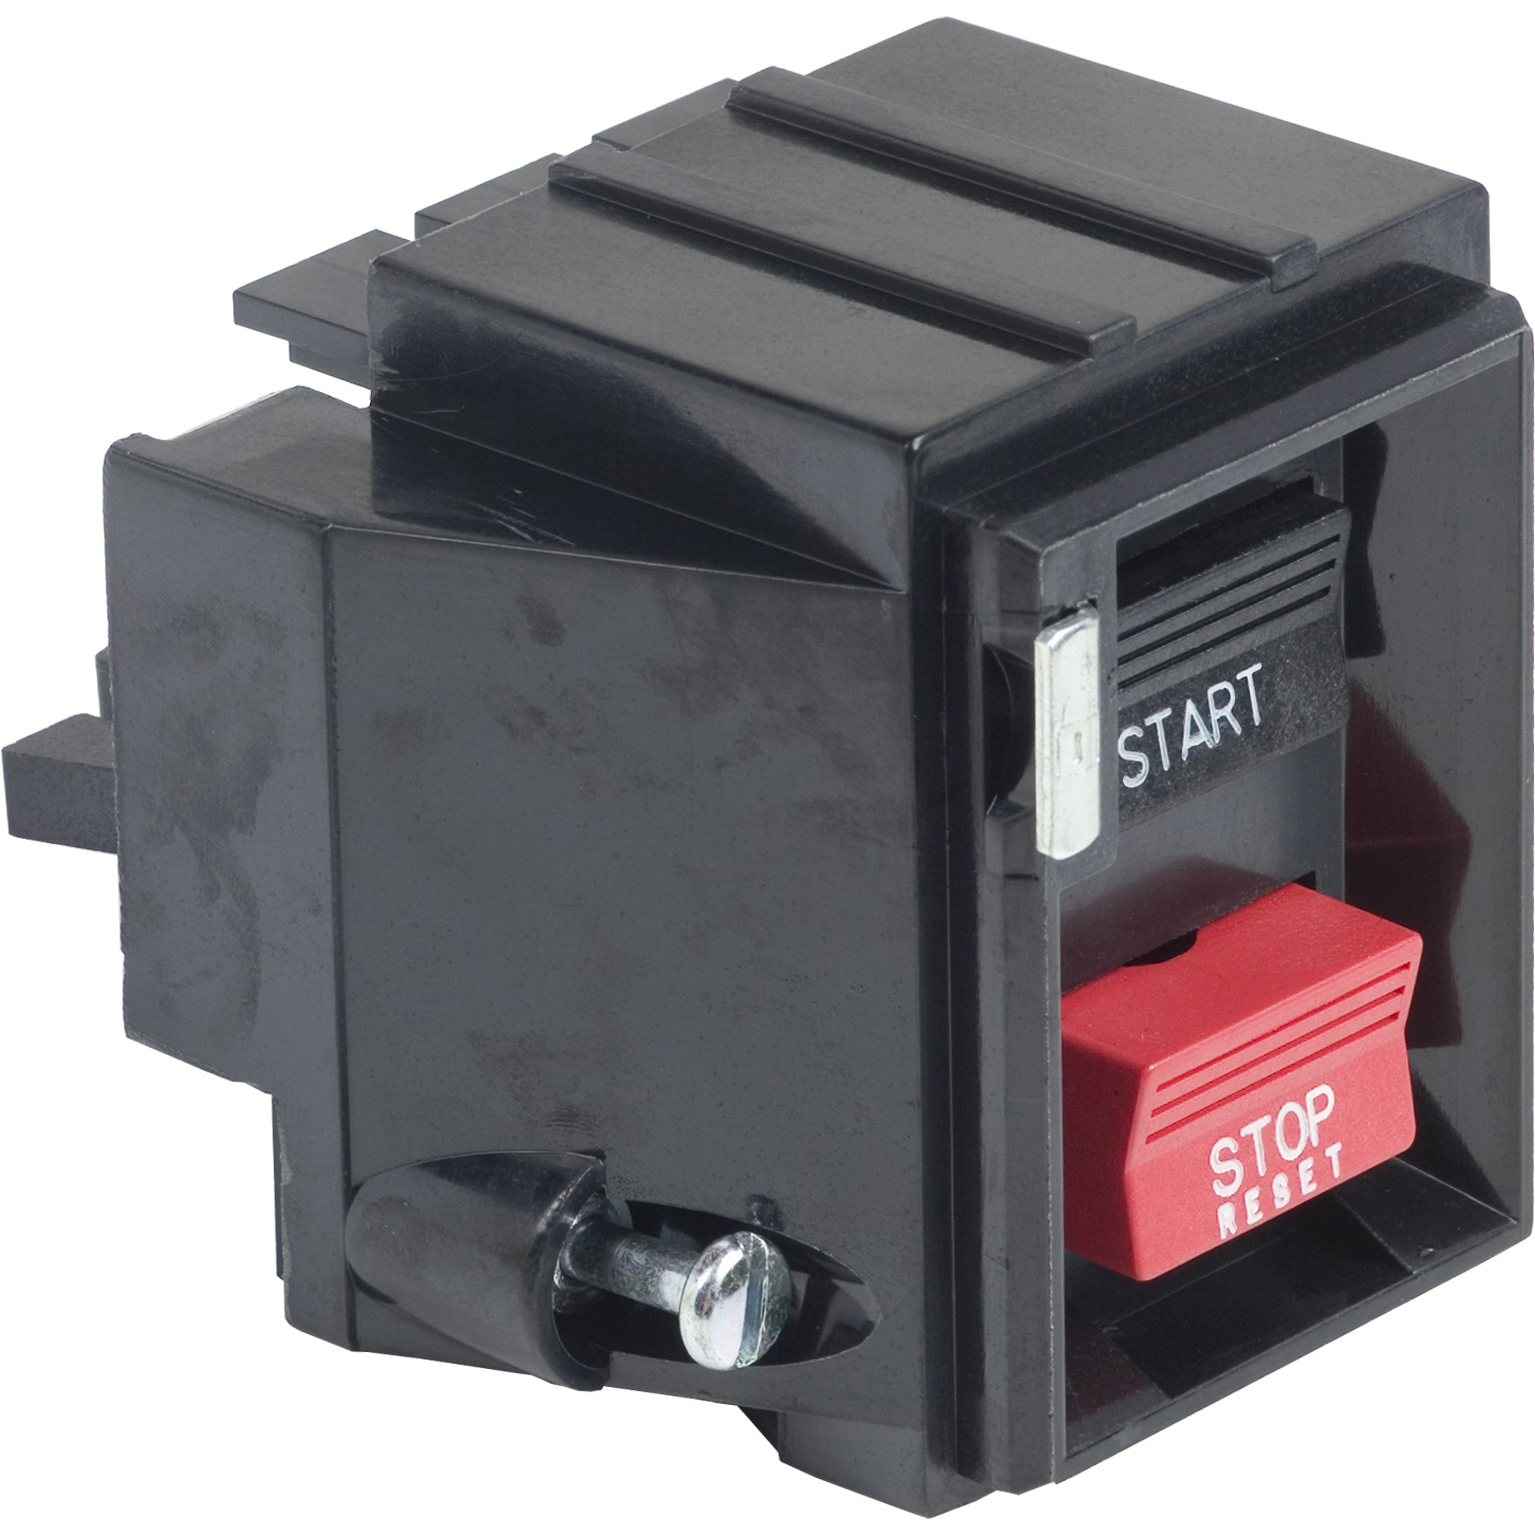 SQUARE D Replacement Power Head Push Button for 2510M Manual NEMA Starter